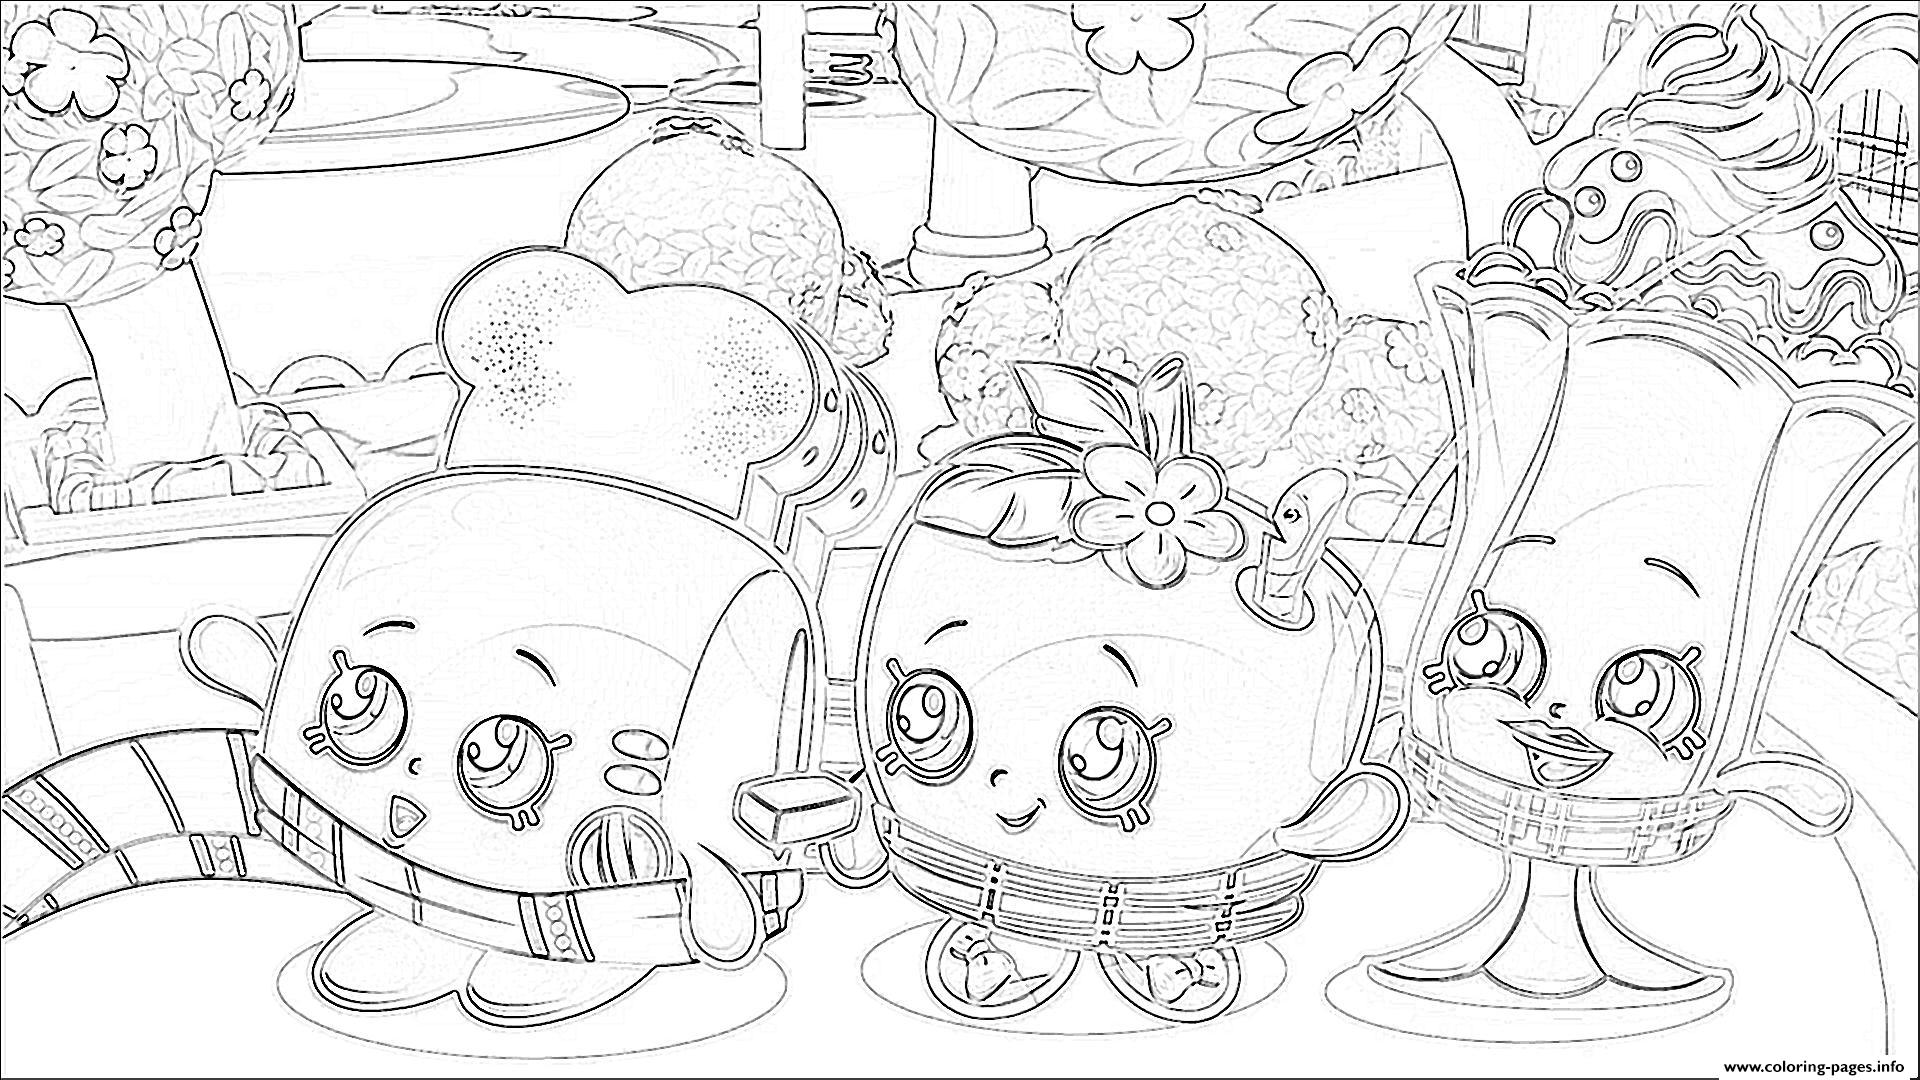 shopkins season 2 episode 3 coloring pages printable